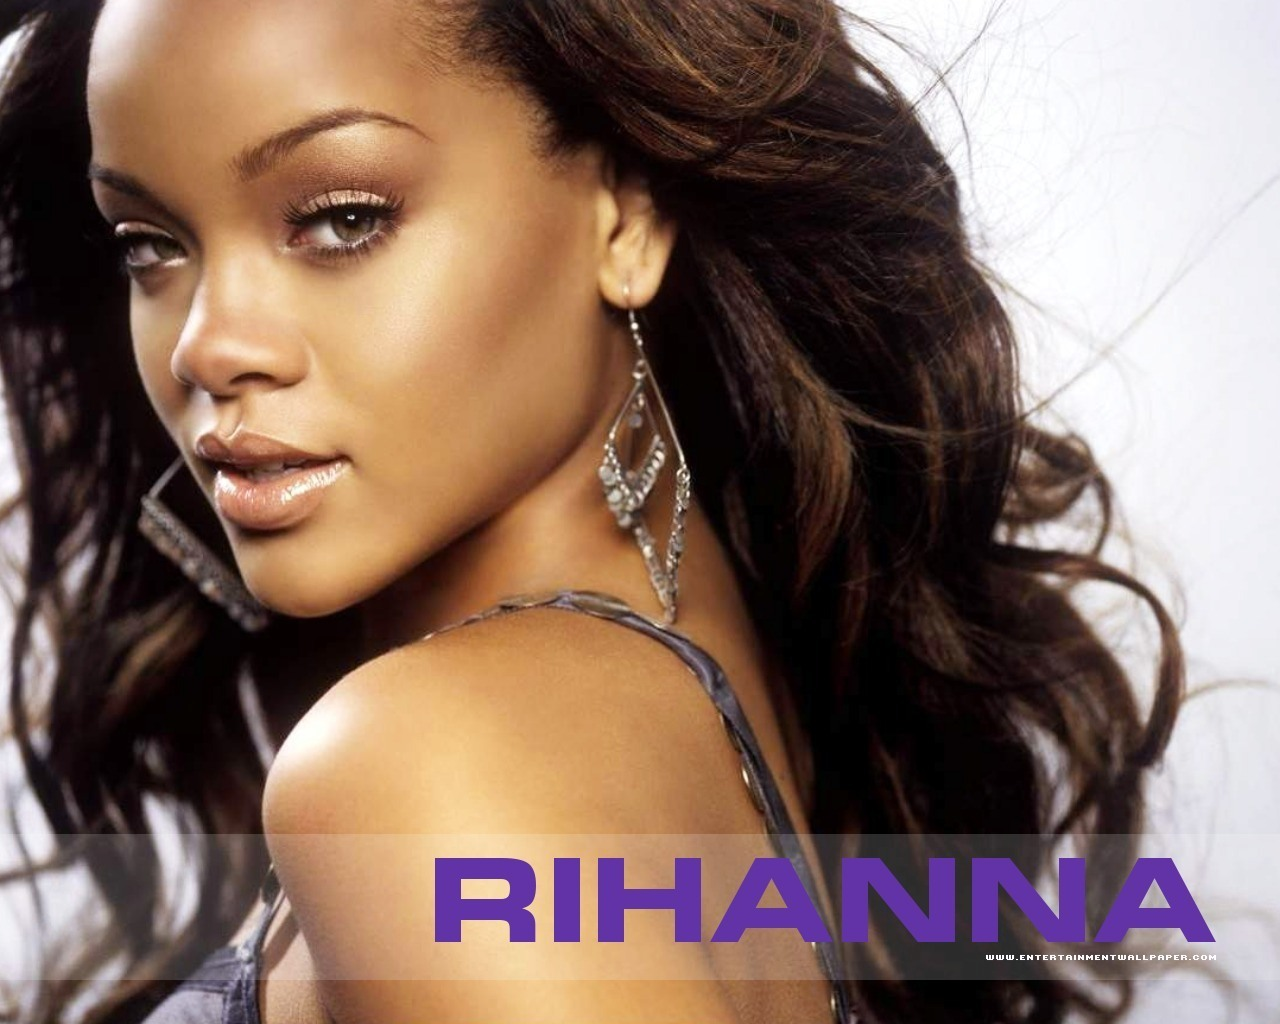 Rihanna♥ - Rihanna Wallpaper (6465334) - Fanpop